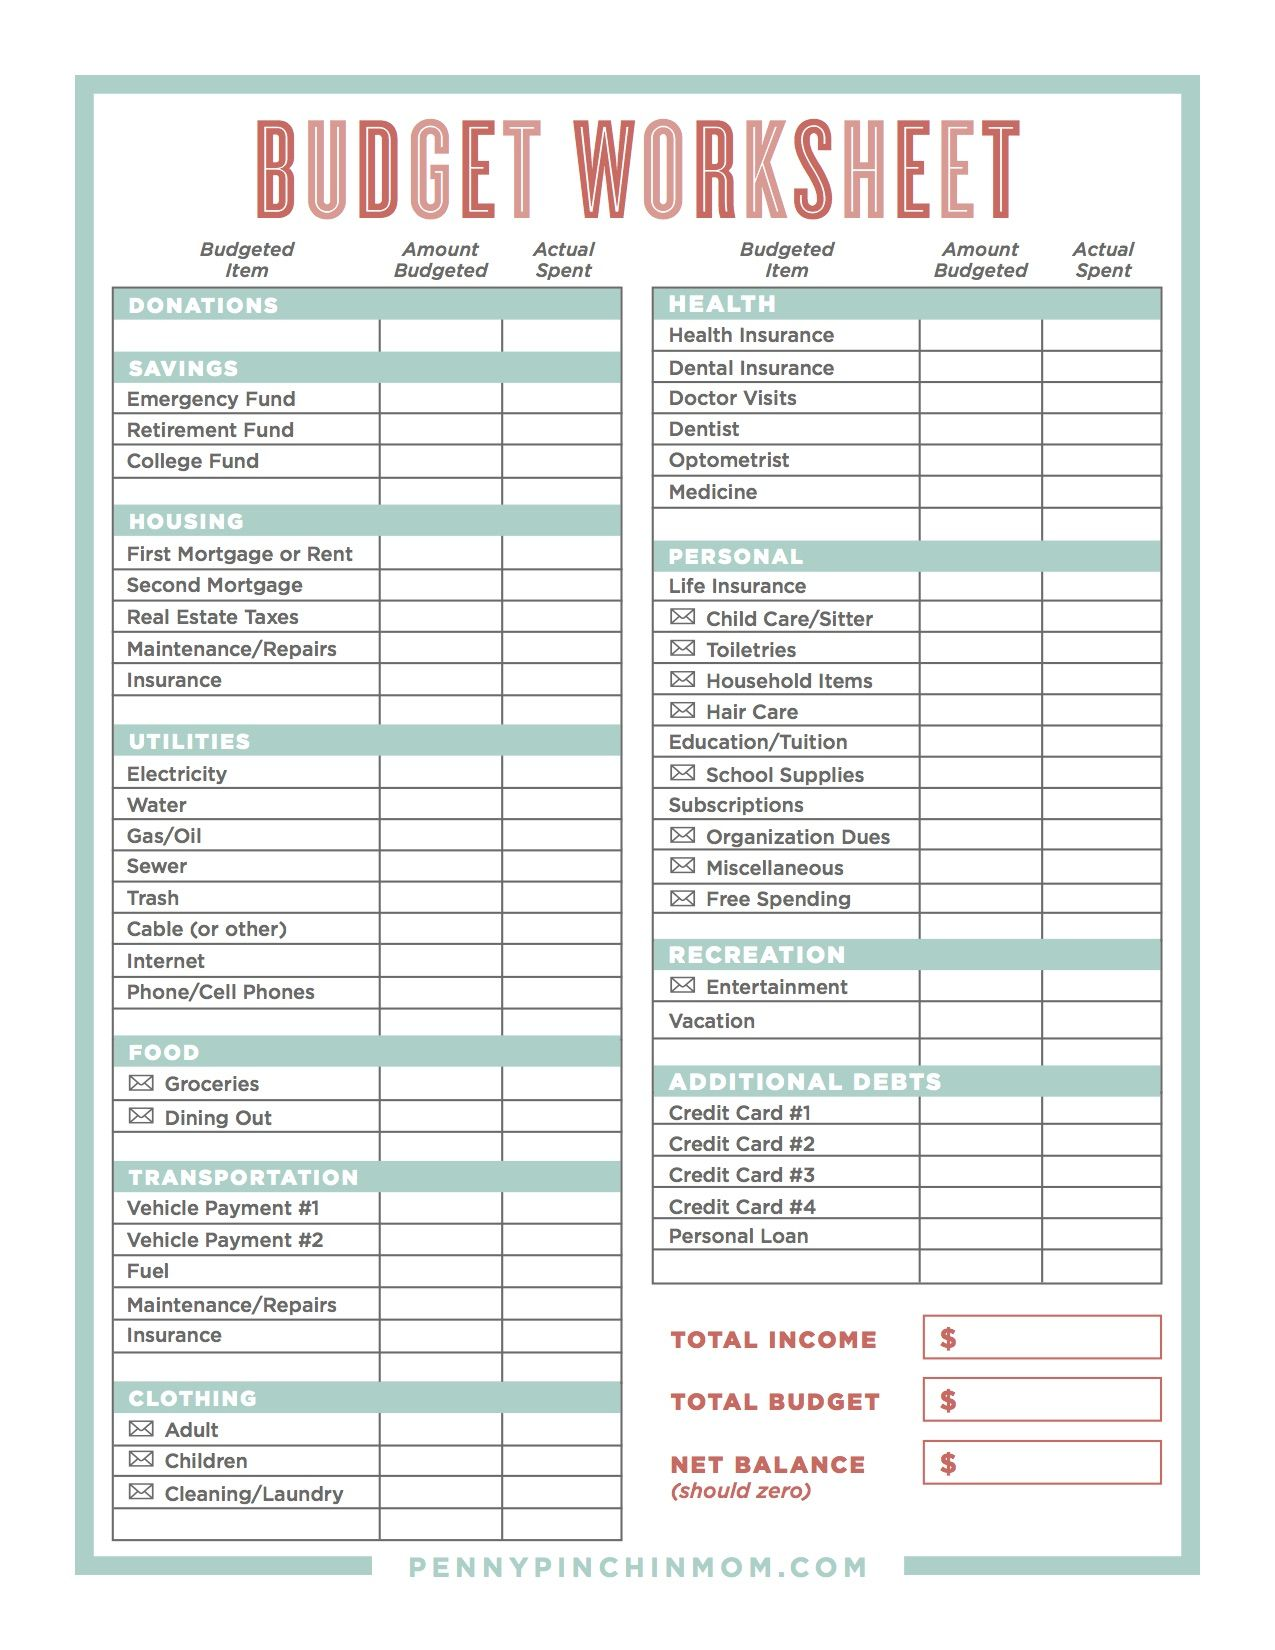 Worksheets Budgeting Worksheets For Adults the tricks for sticking to a budget budgeting 101 and budget